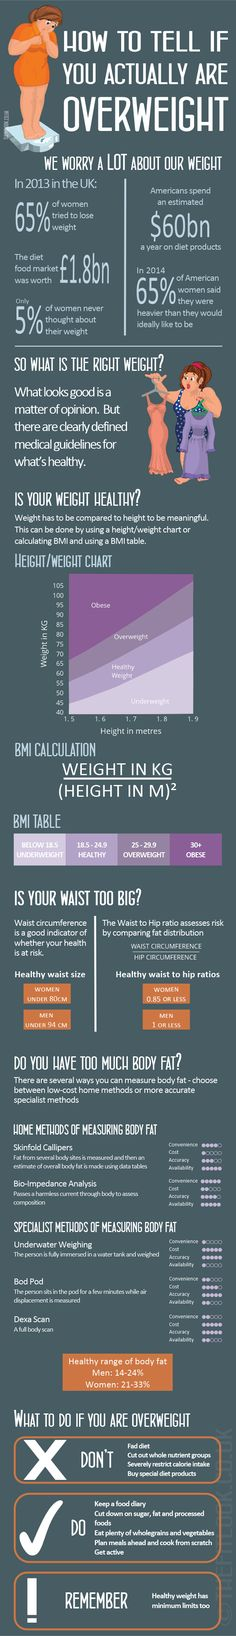 The range for healthy weight spans several dress sizes, as does people's opinions on what looks best. This post looks at what the healthy range is and how to asses your own weight.